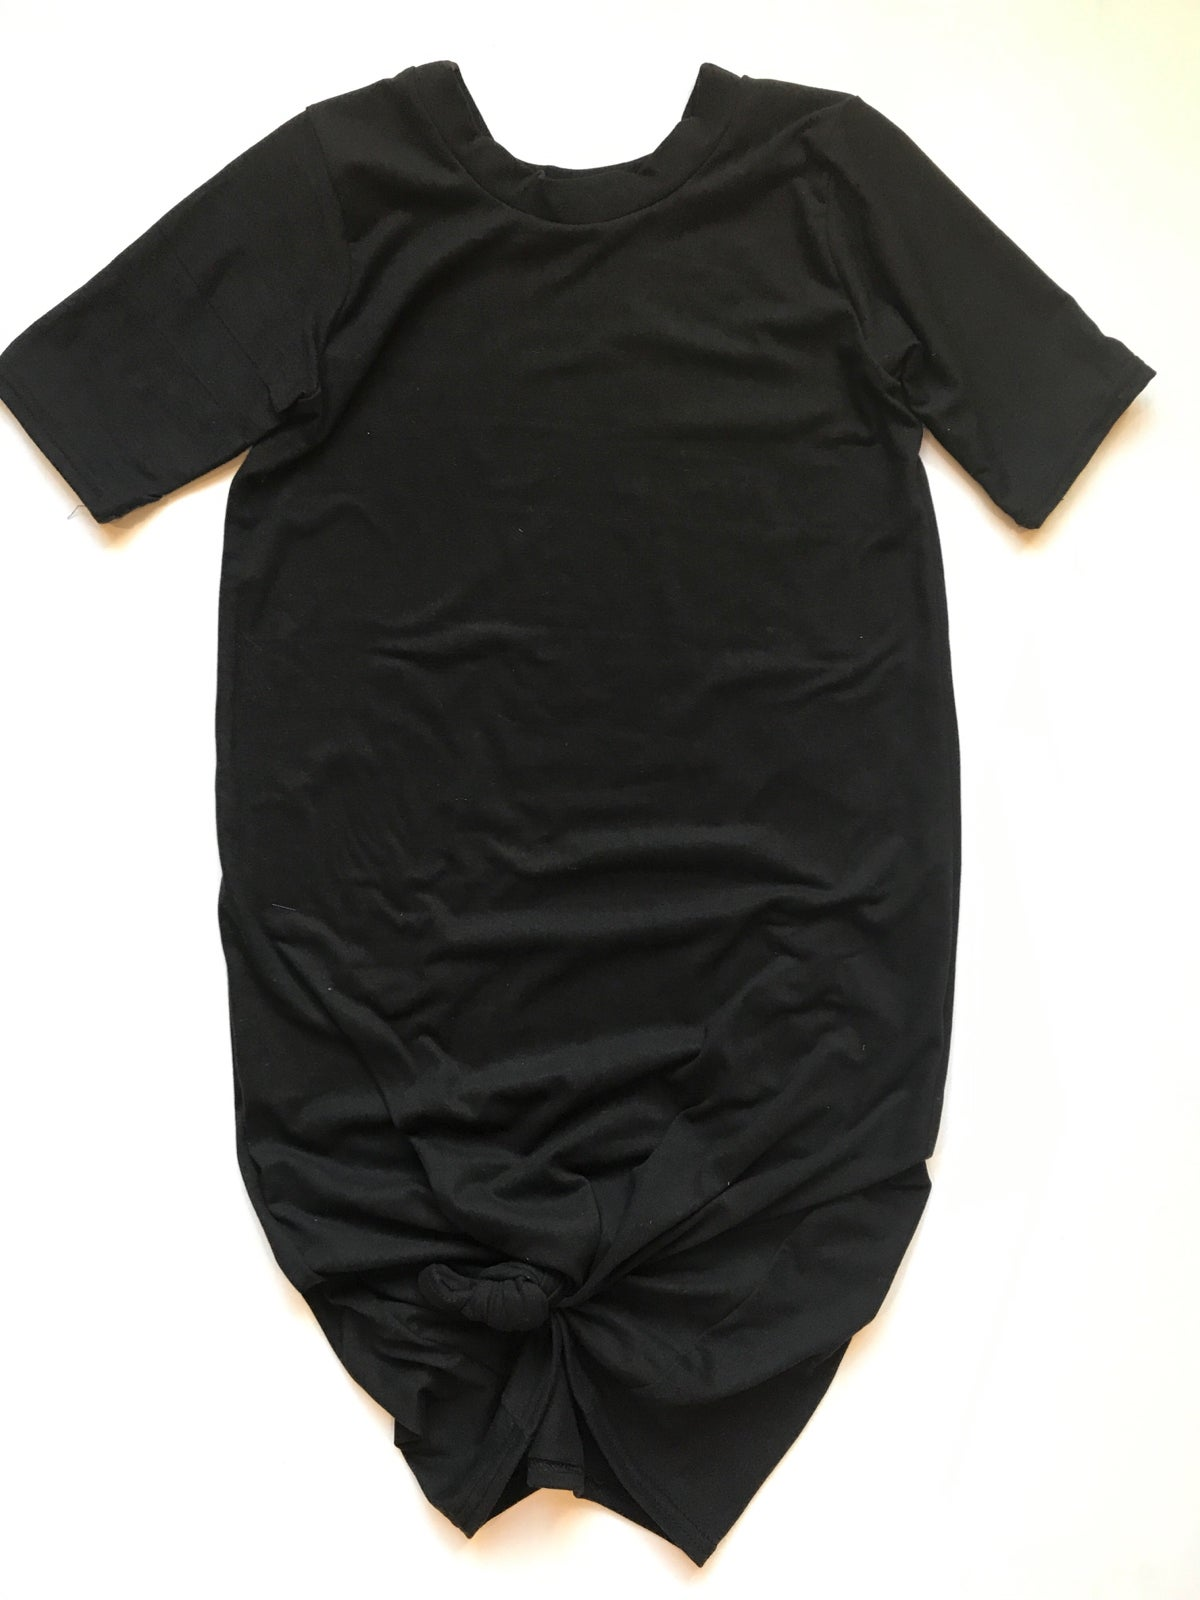 Image of Women's Black Knot Knit Dress